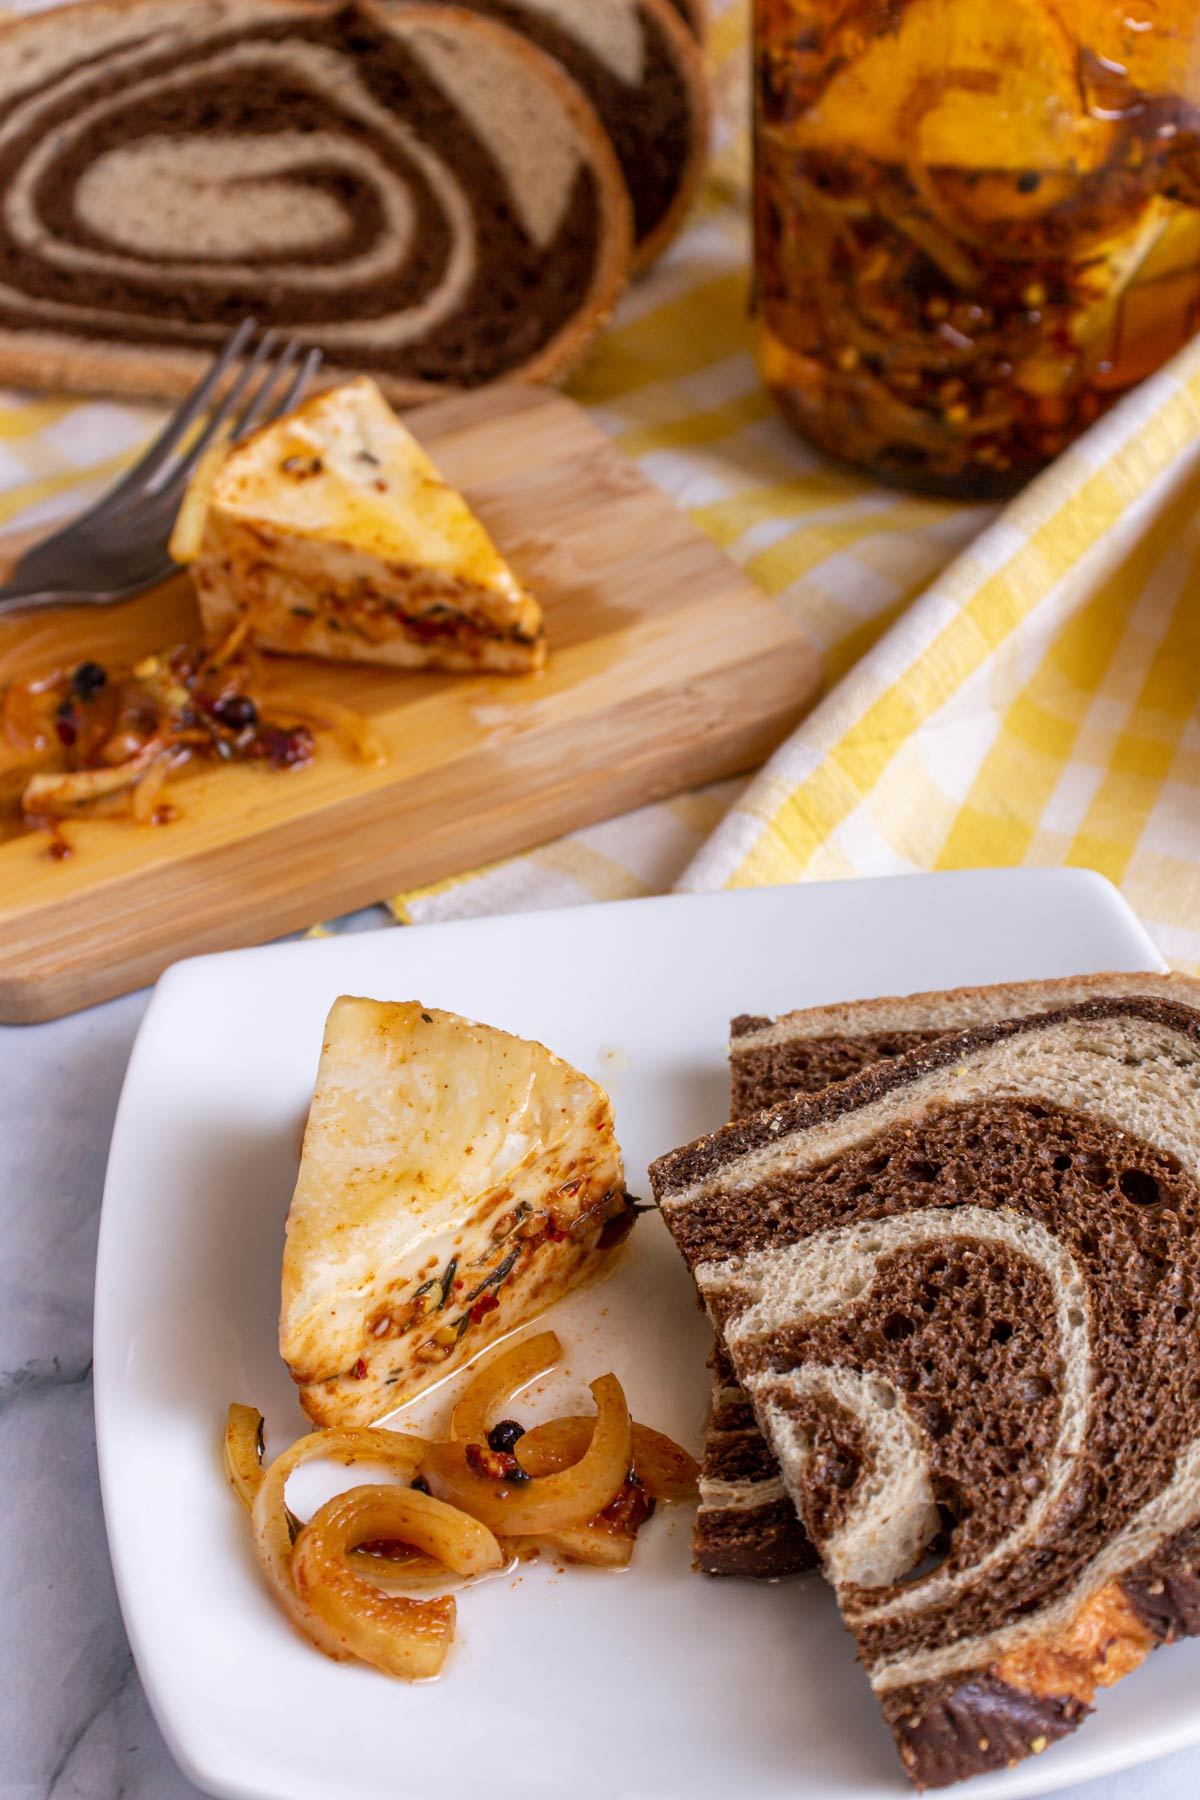 Wedges of marinated cheese on a plate and wooden board with sliced marble rye bread.